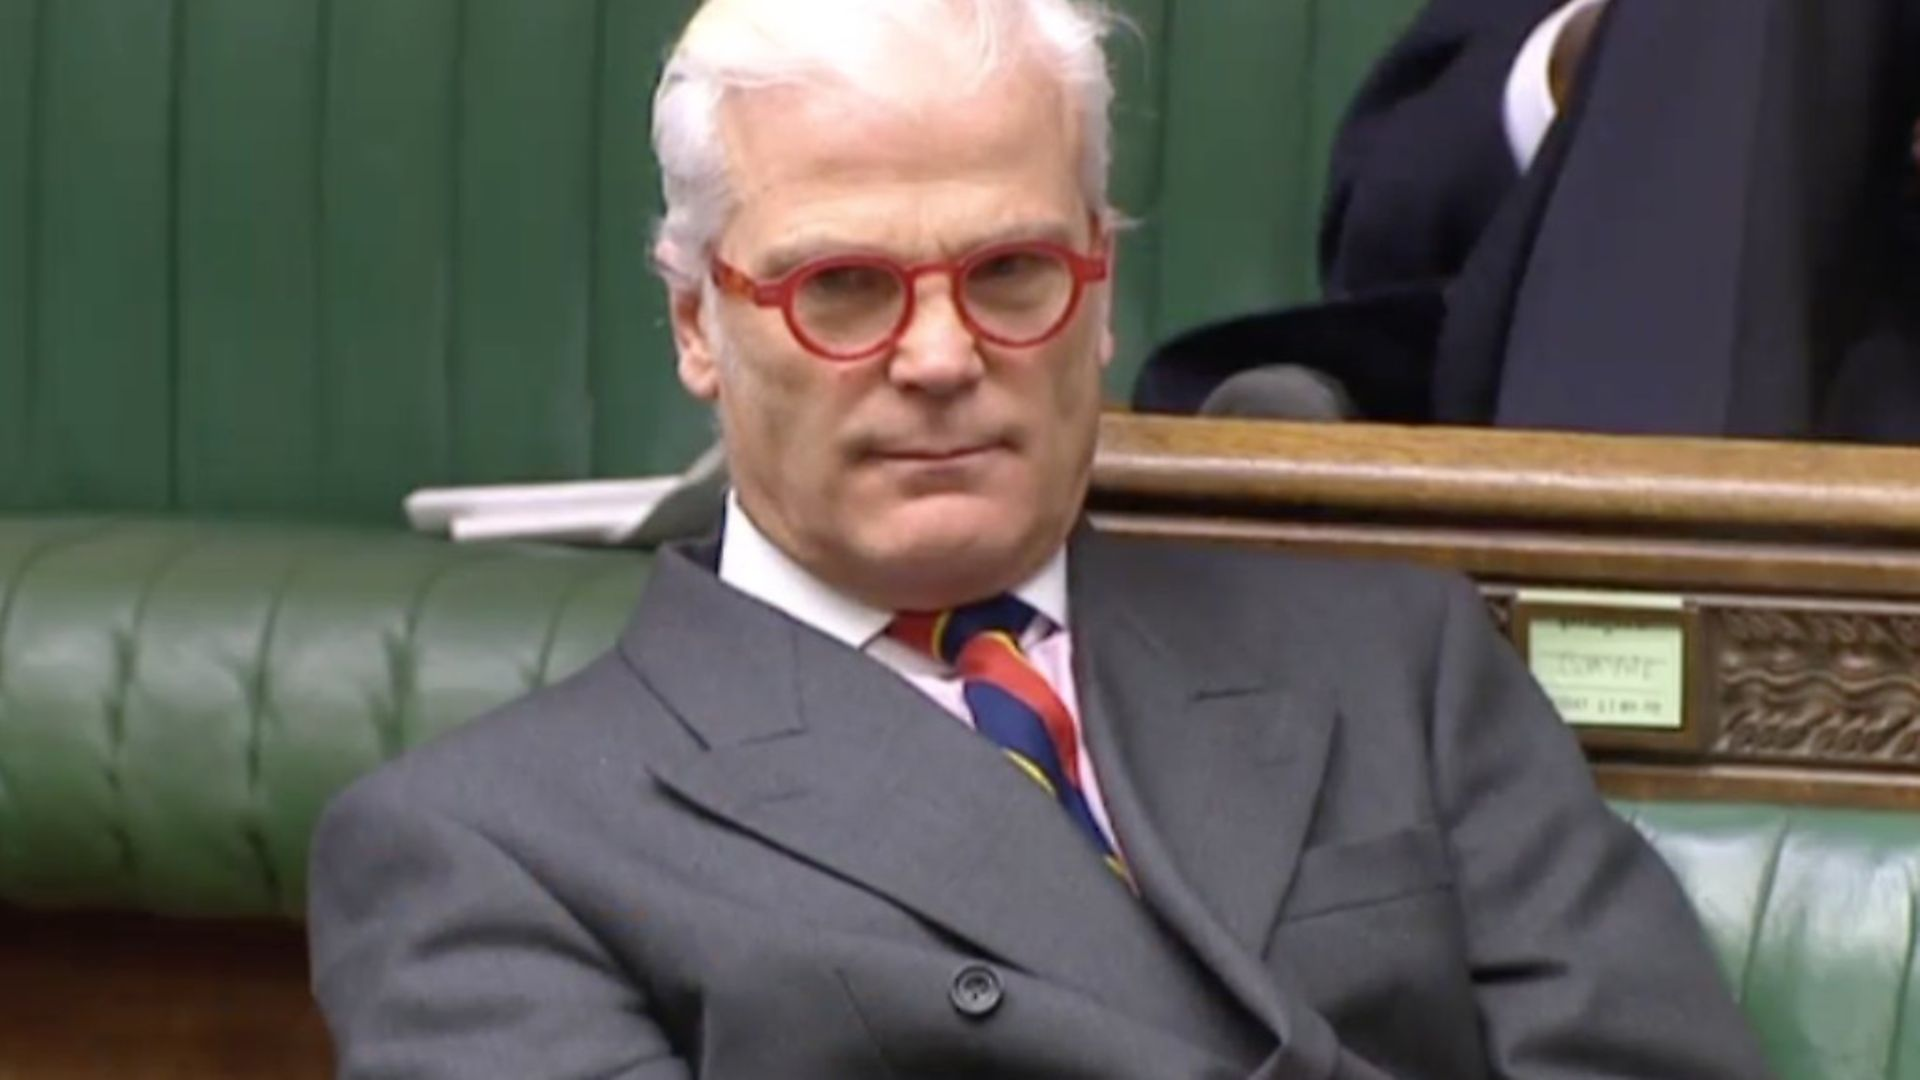 Desmond Swayne in the Hosue of Commons. Photograph: Parliament TV. - Credit: Archant